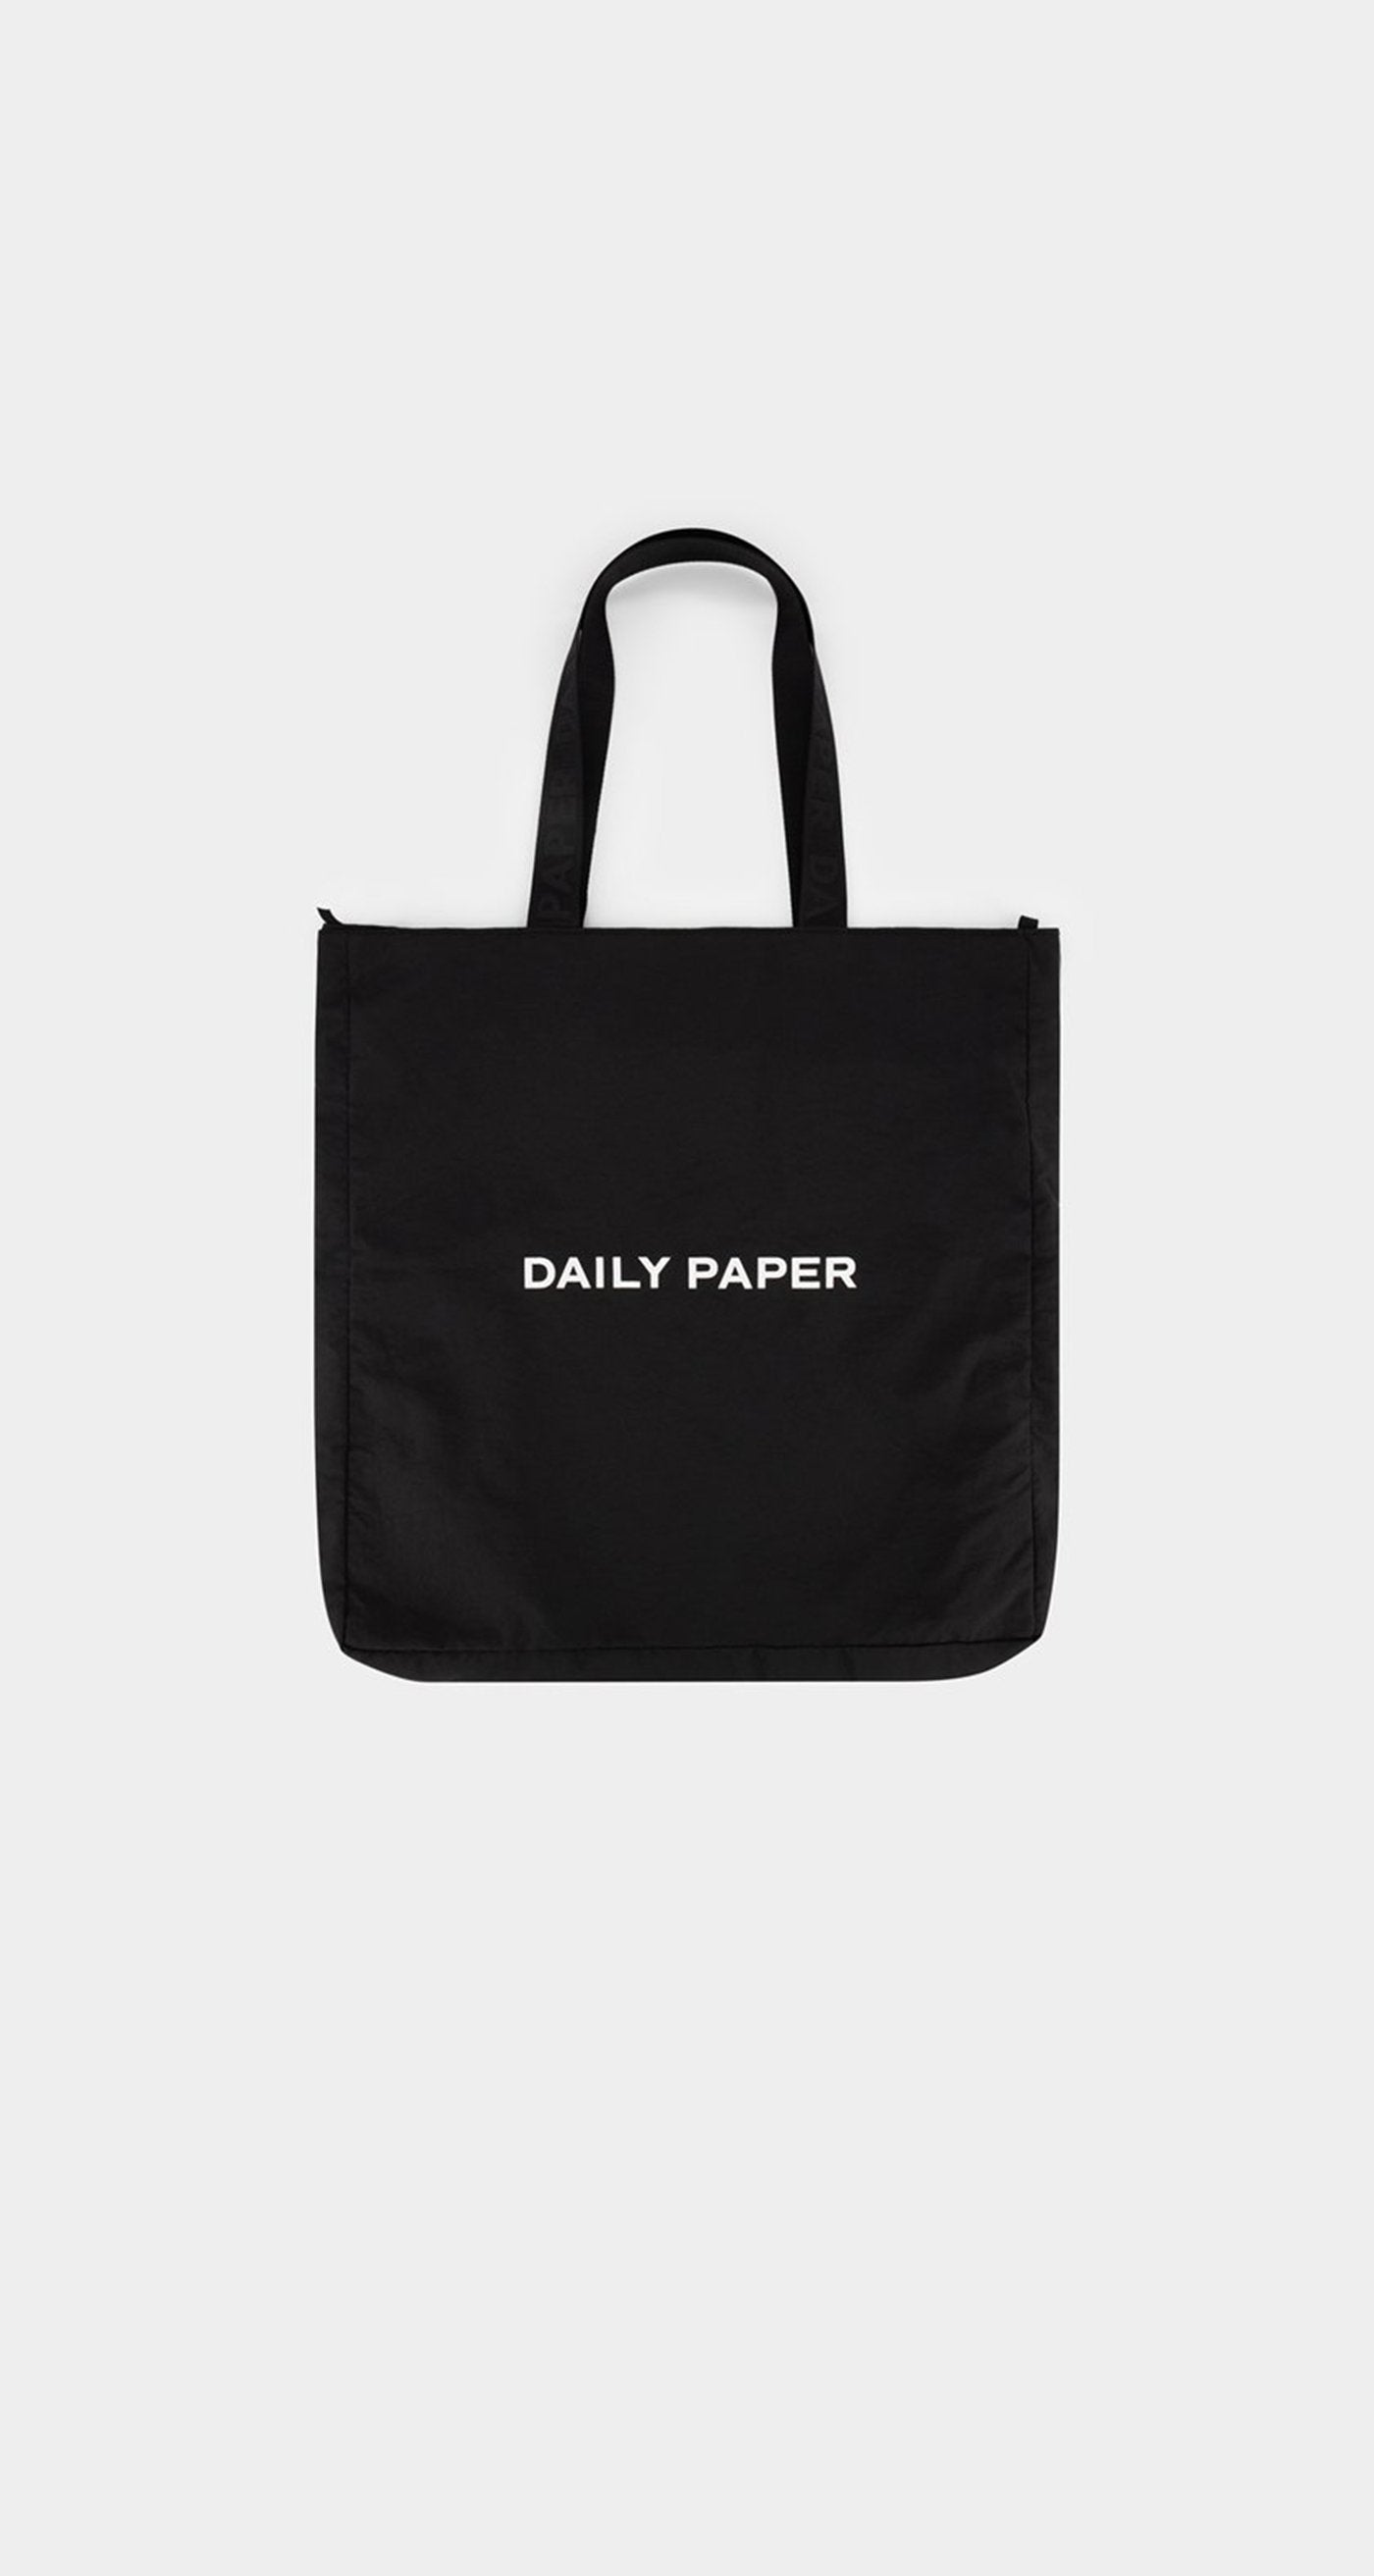 Daily Paper - Black Etote Bag - Rear